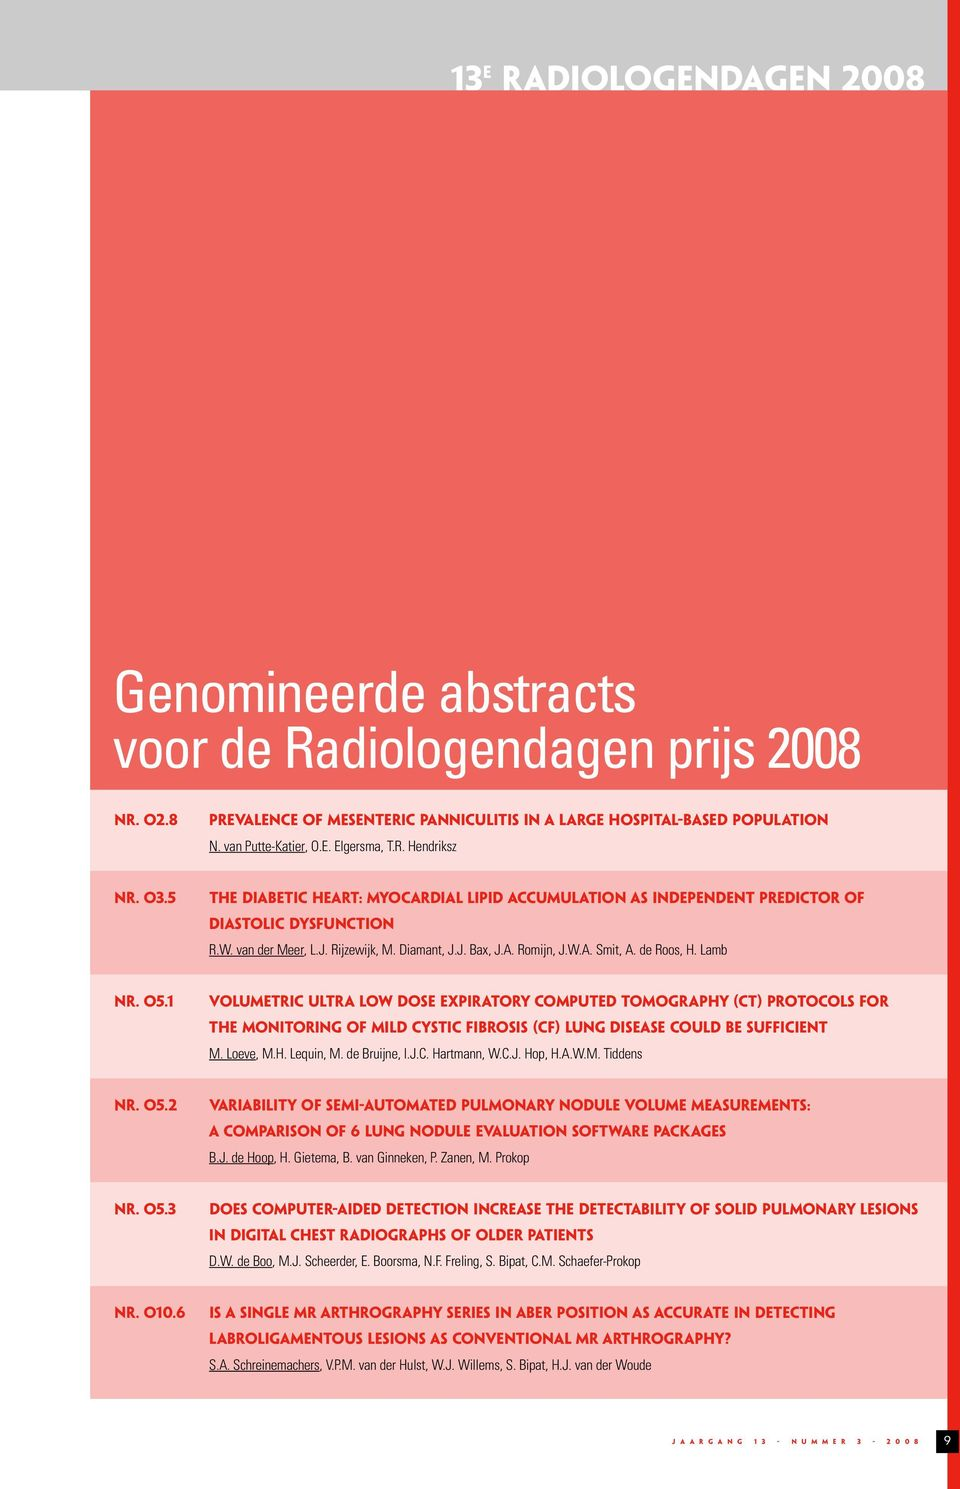 de Roos, H. Lamb NR. O5. VOLUMETRIC ULTRA LOW DOSE EXPIRATORY COMPUTED TOMOGRAPHY (CT) PROTOCOLS FOR THE MONITORING OF MILD CYSTIC FIBROSIS (CF) LUNG DISEASE COULD BE SUFFICIENT M. Loeve, M.H. Lequin, M.